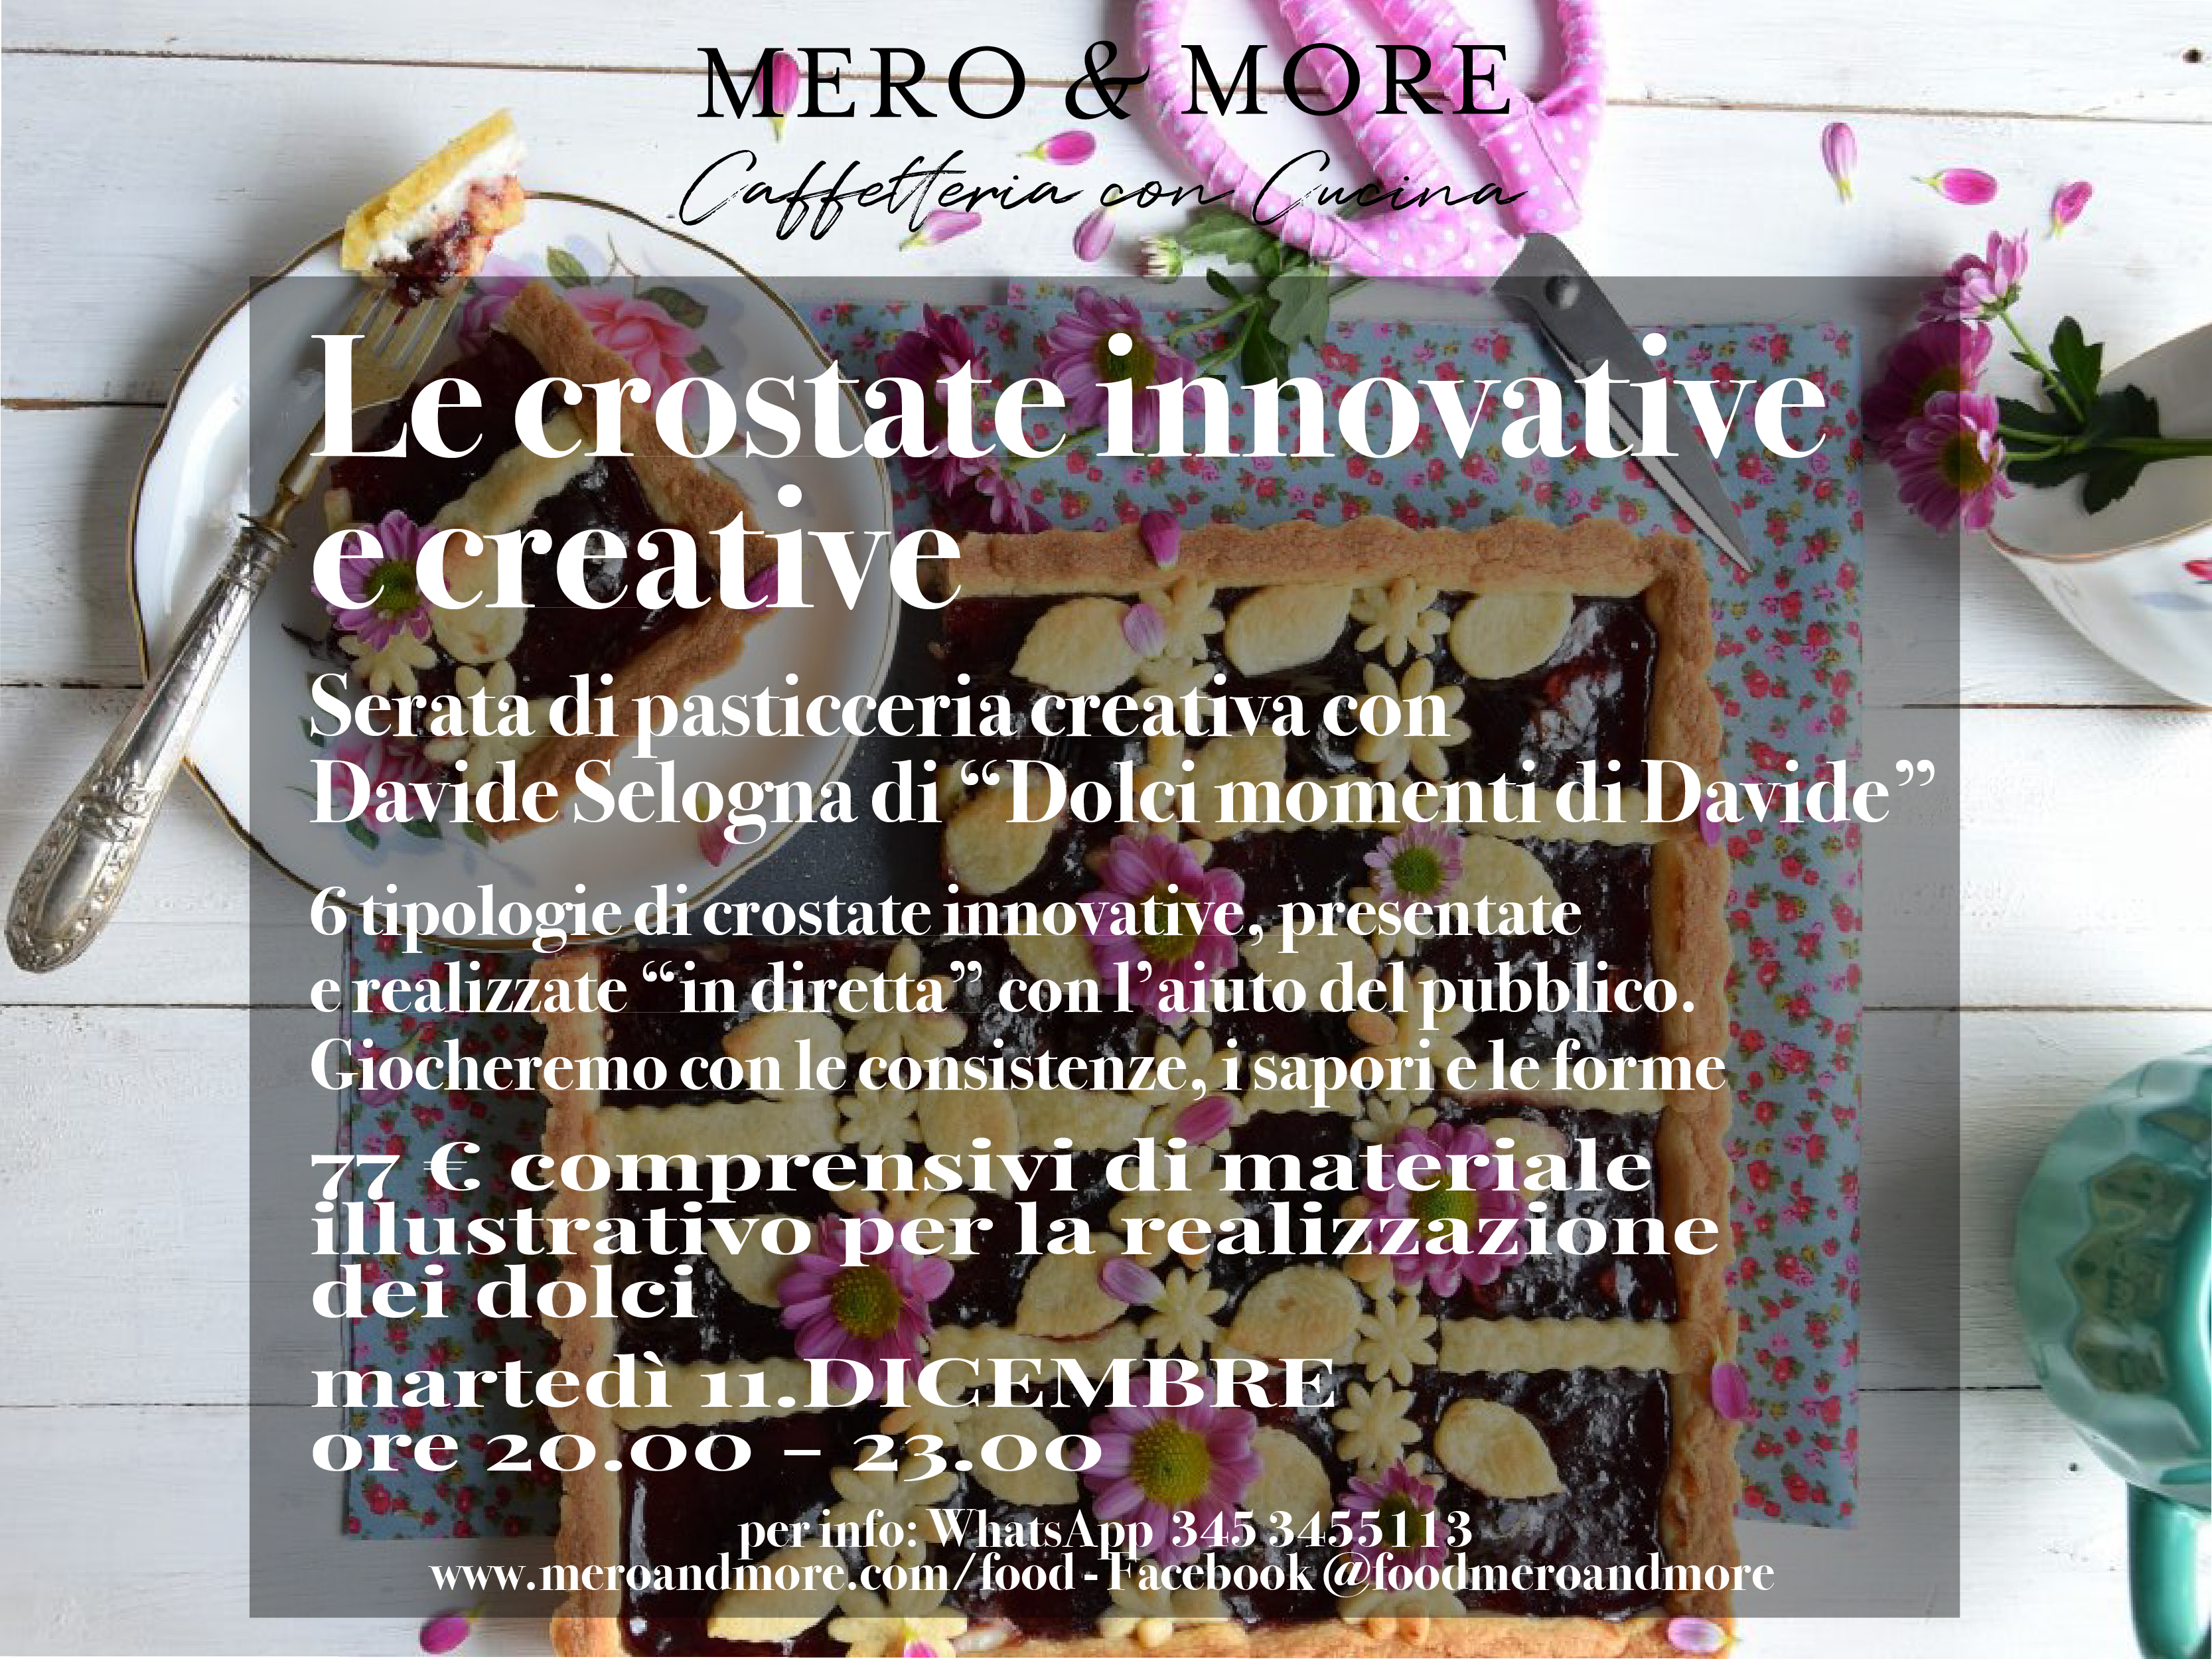 Le crostate innovative e creative